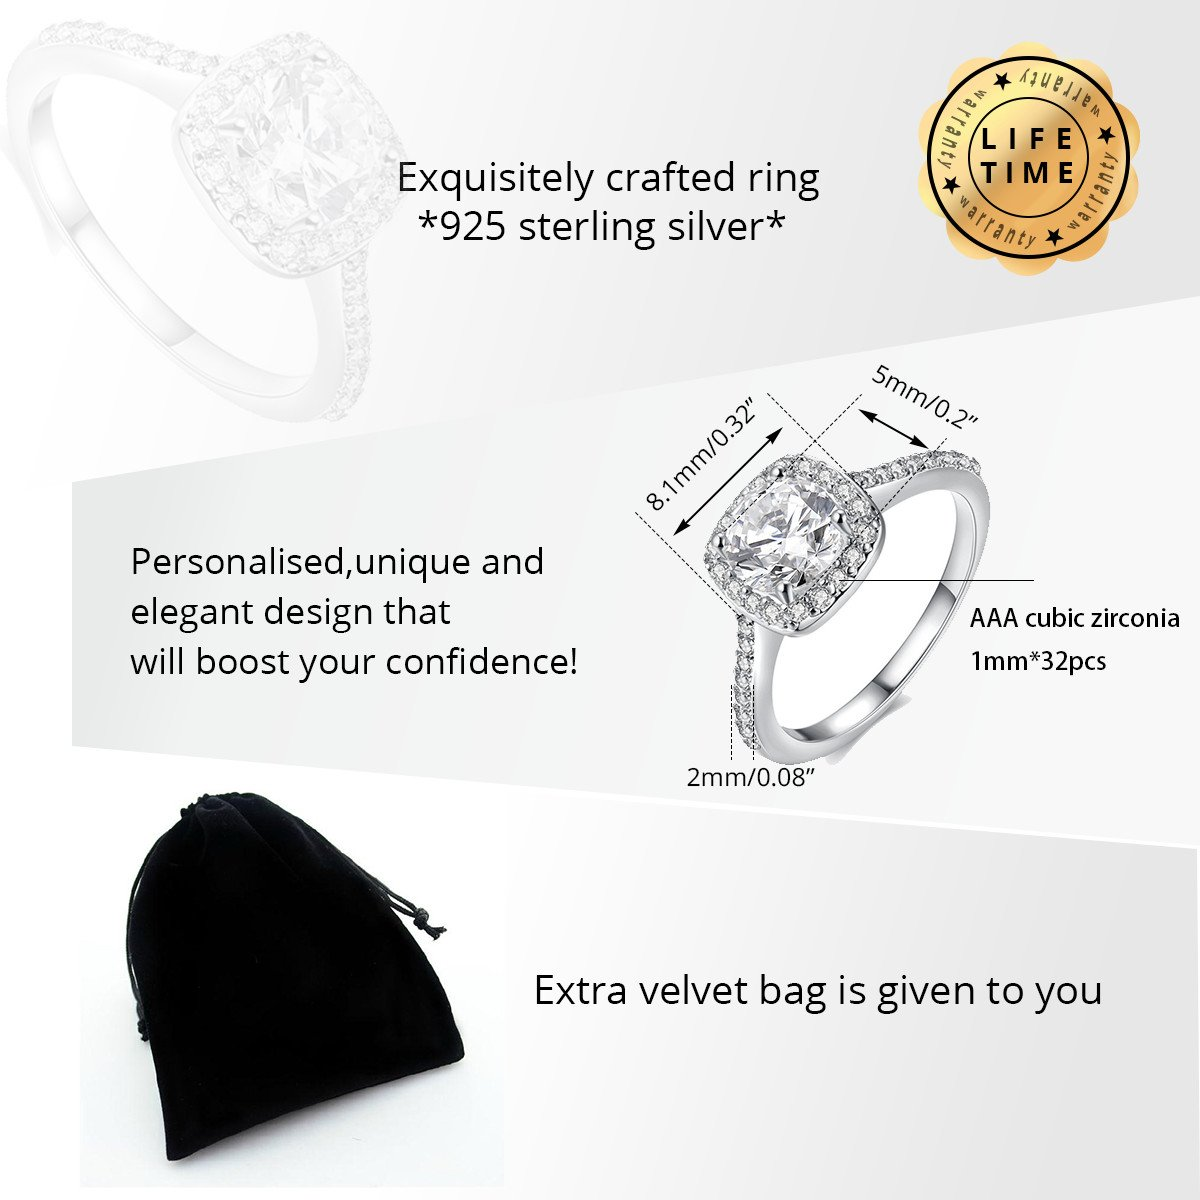 Uloveido 925 Sterling Silver Cushion Cut Cubic Zirconia Halo Solitaire Engagement Rings for Women,Platinum Plated,Wedding Rings,Size 8,LJ074 by Uloveido (Image #6)